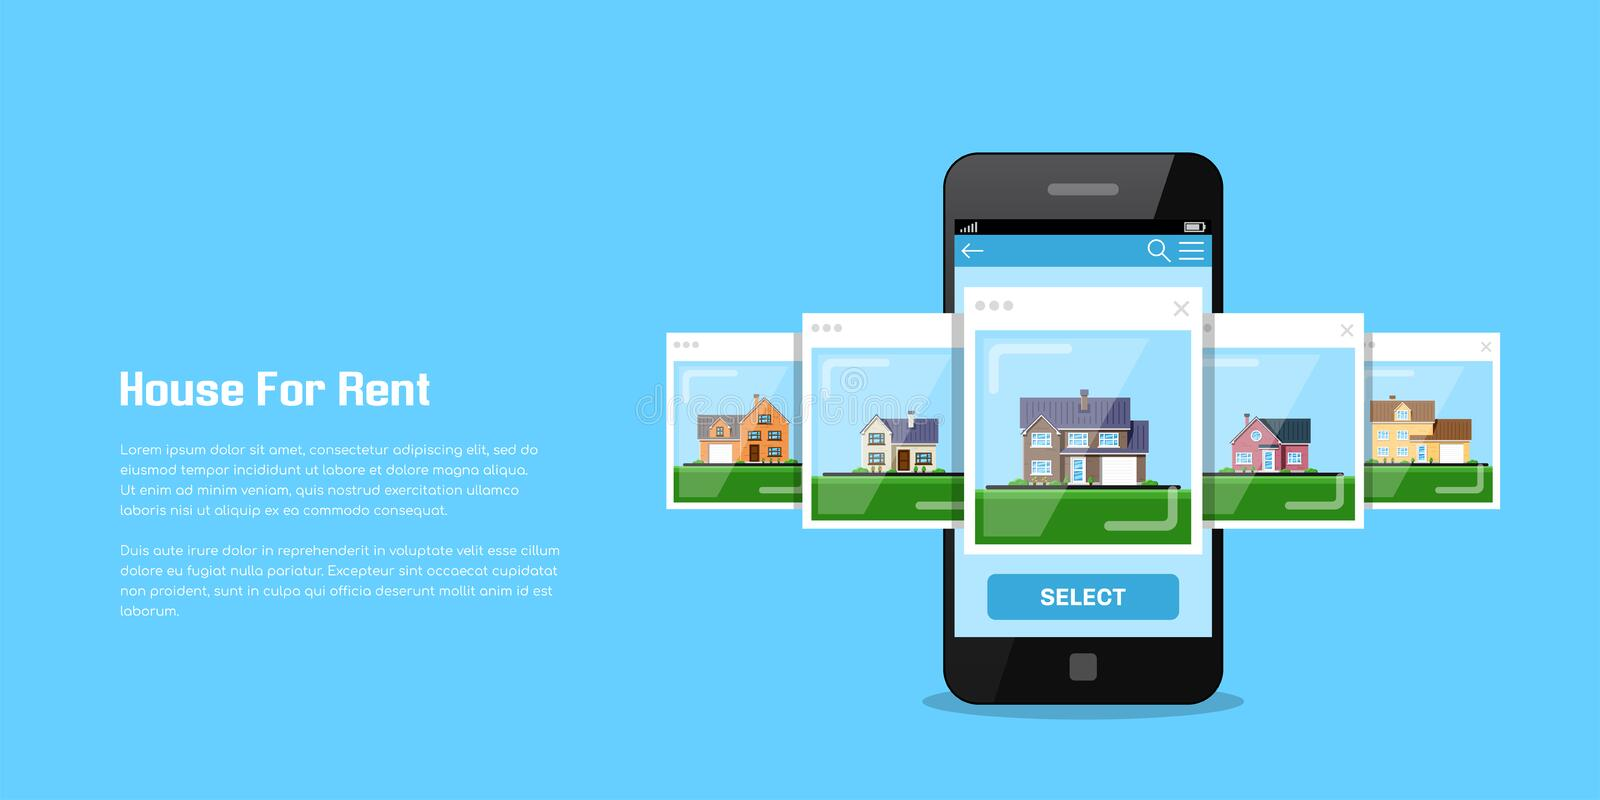 House for rent royalty free illustration